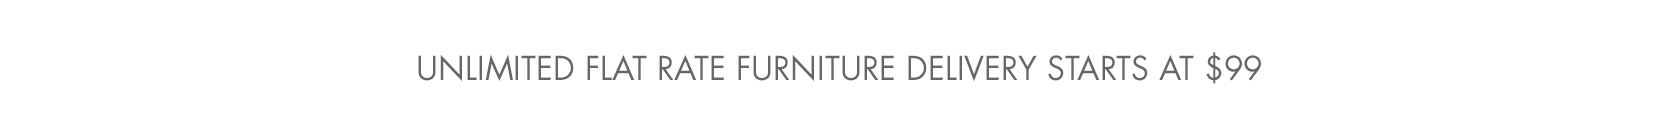 Unlimited Flat Rate Furniture Delivery